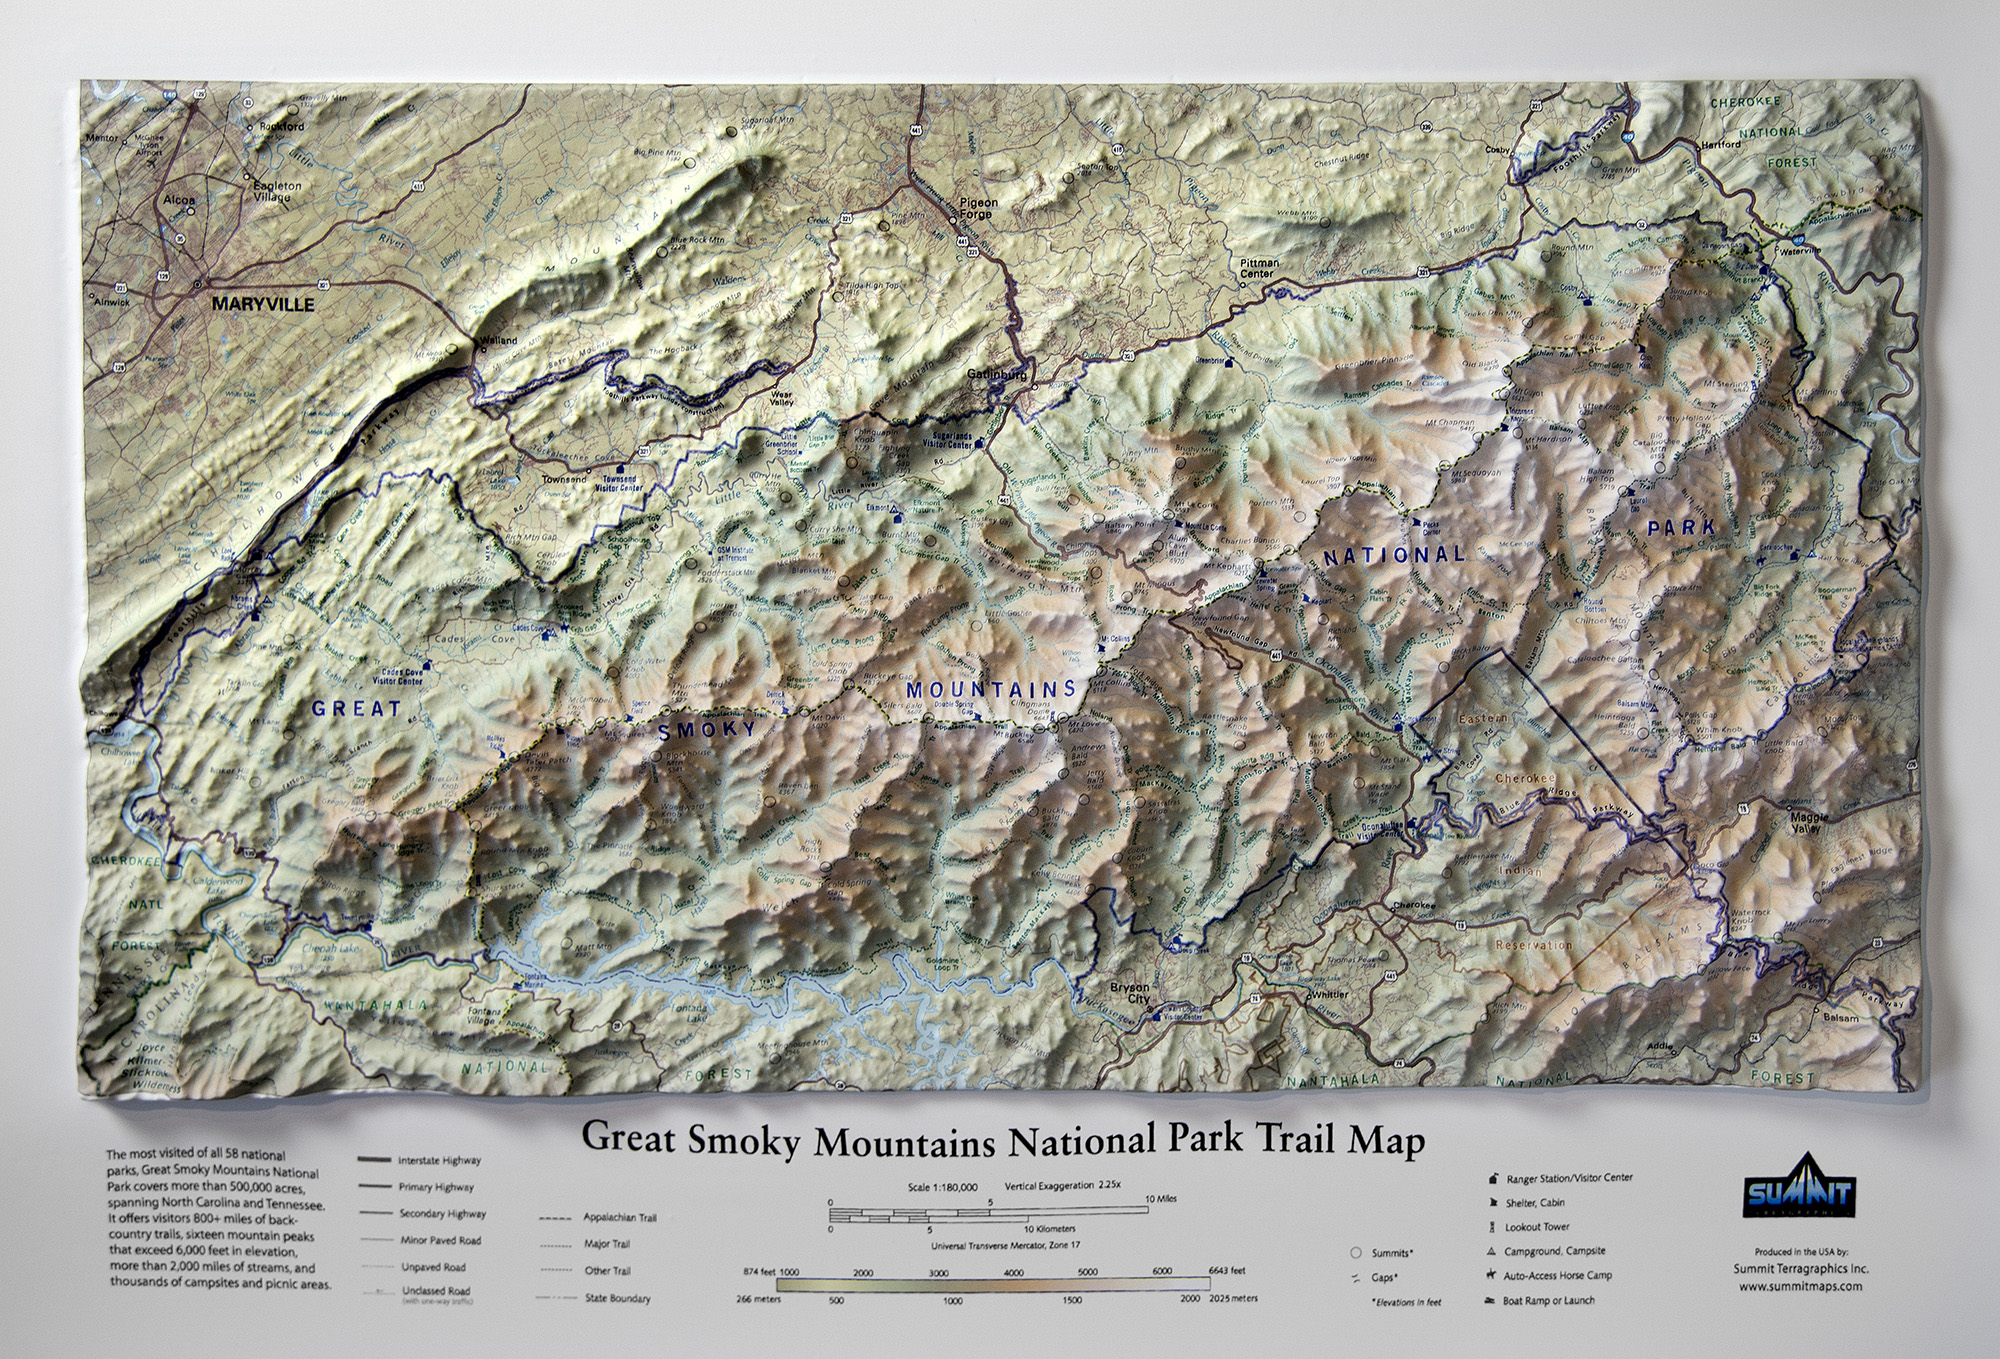 Great Smoky Mountains National Park Trail Map - Summit Maps on